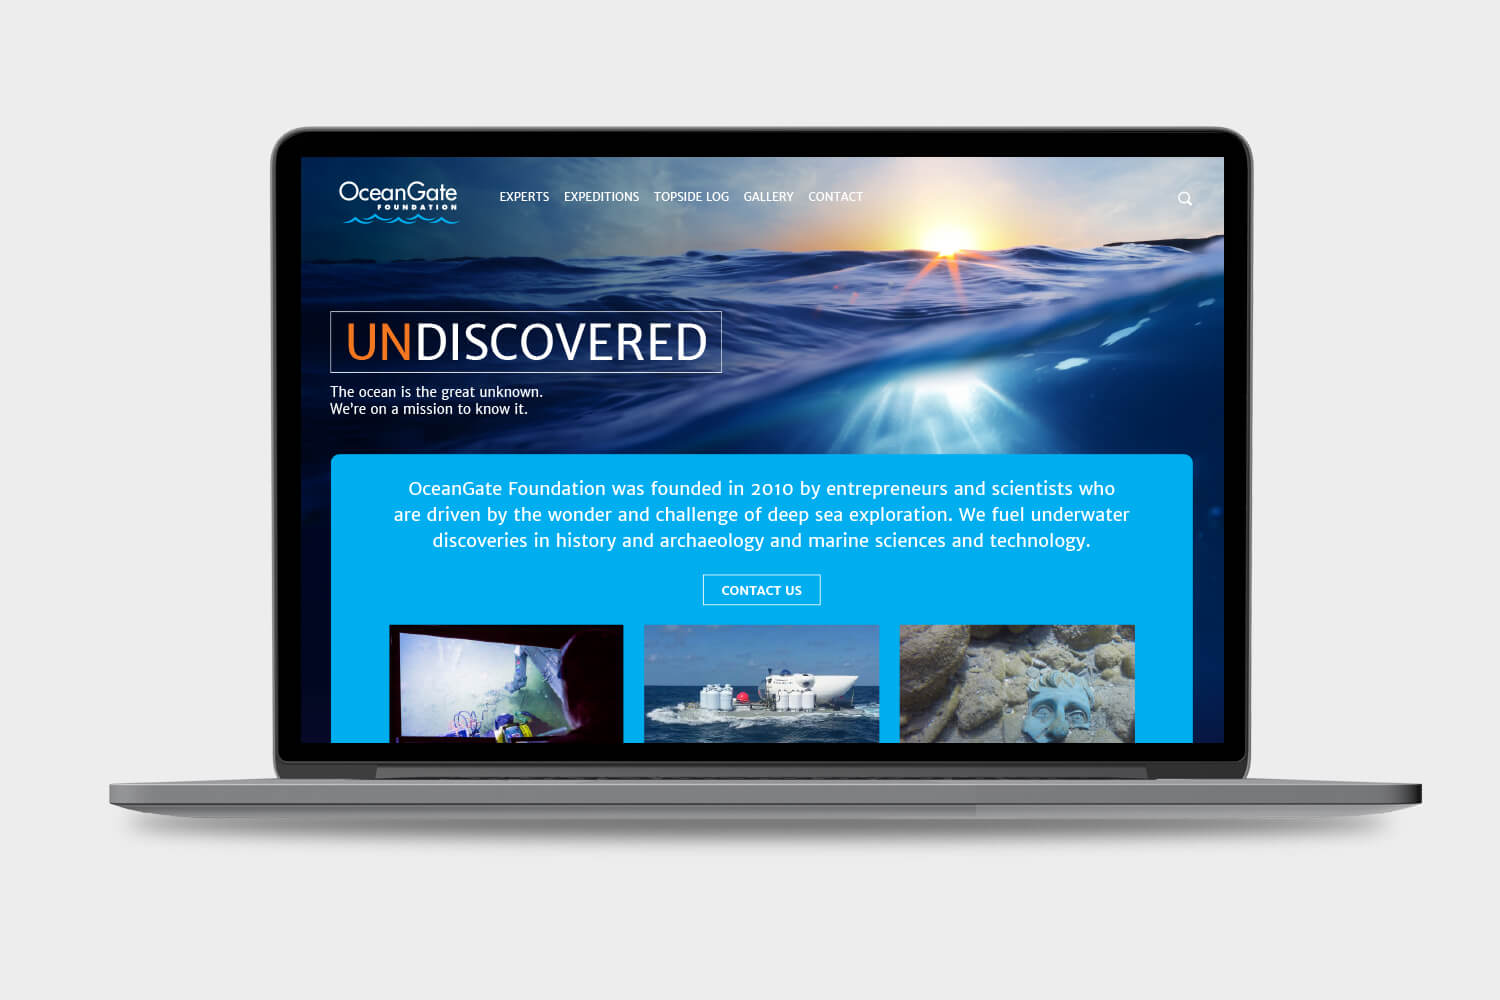 OceanGate Foundation website design